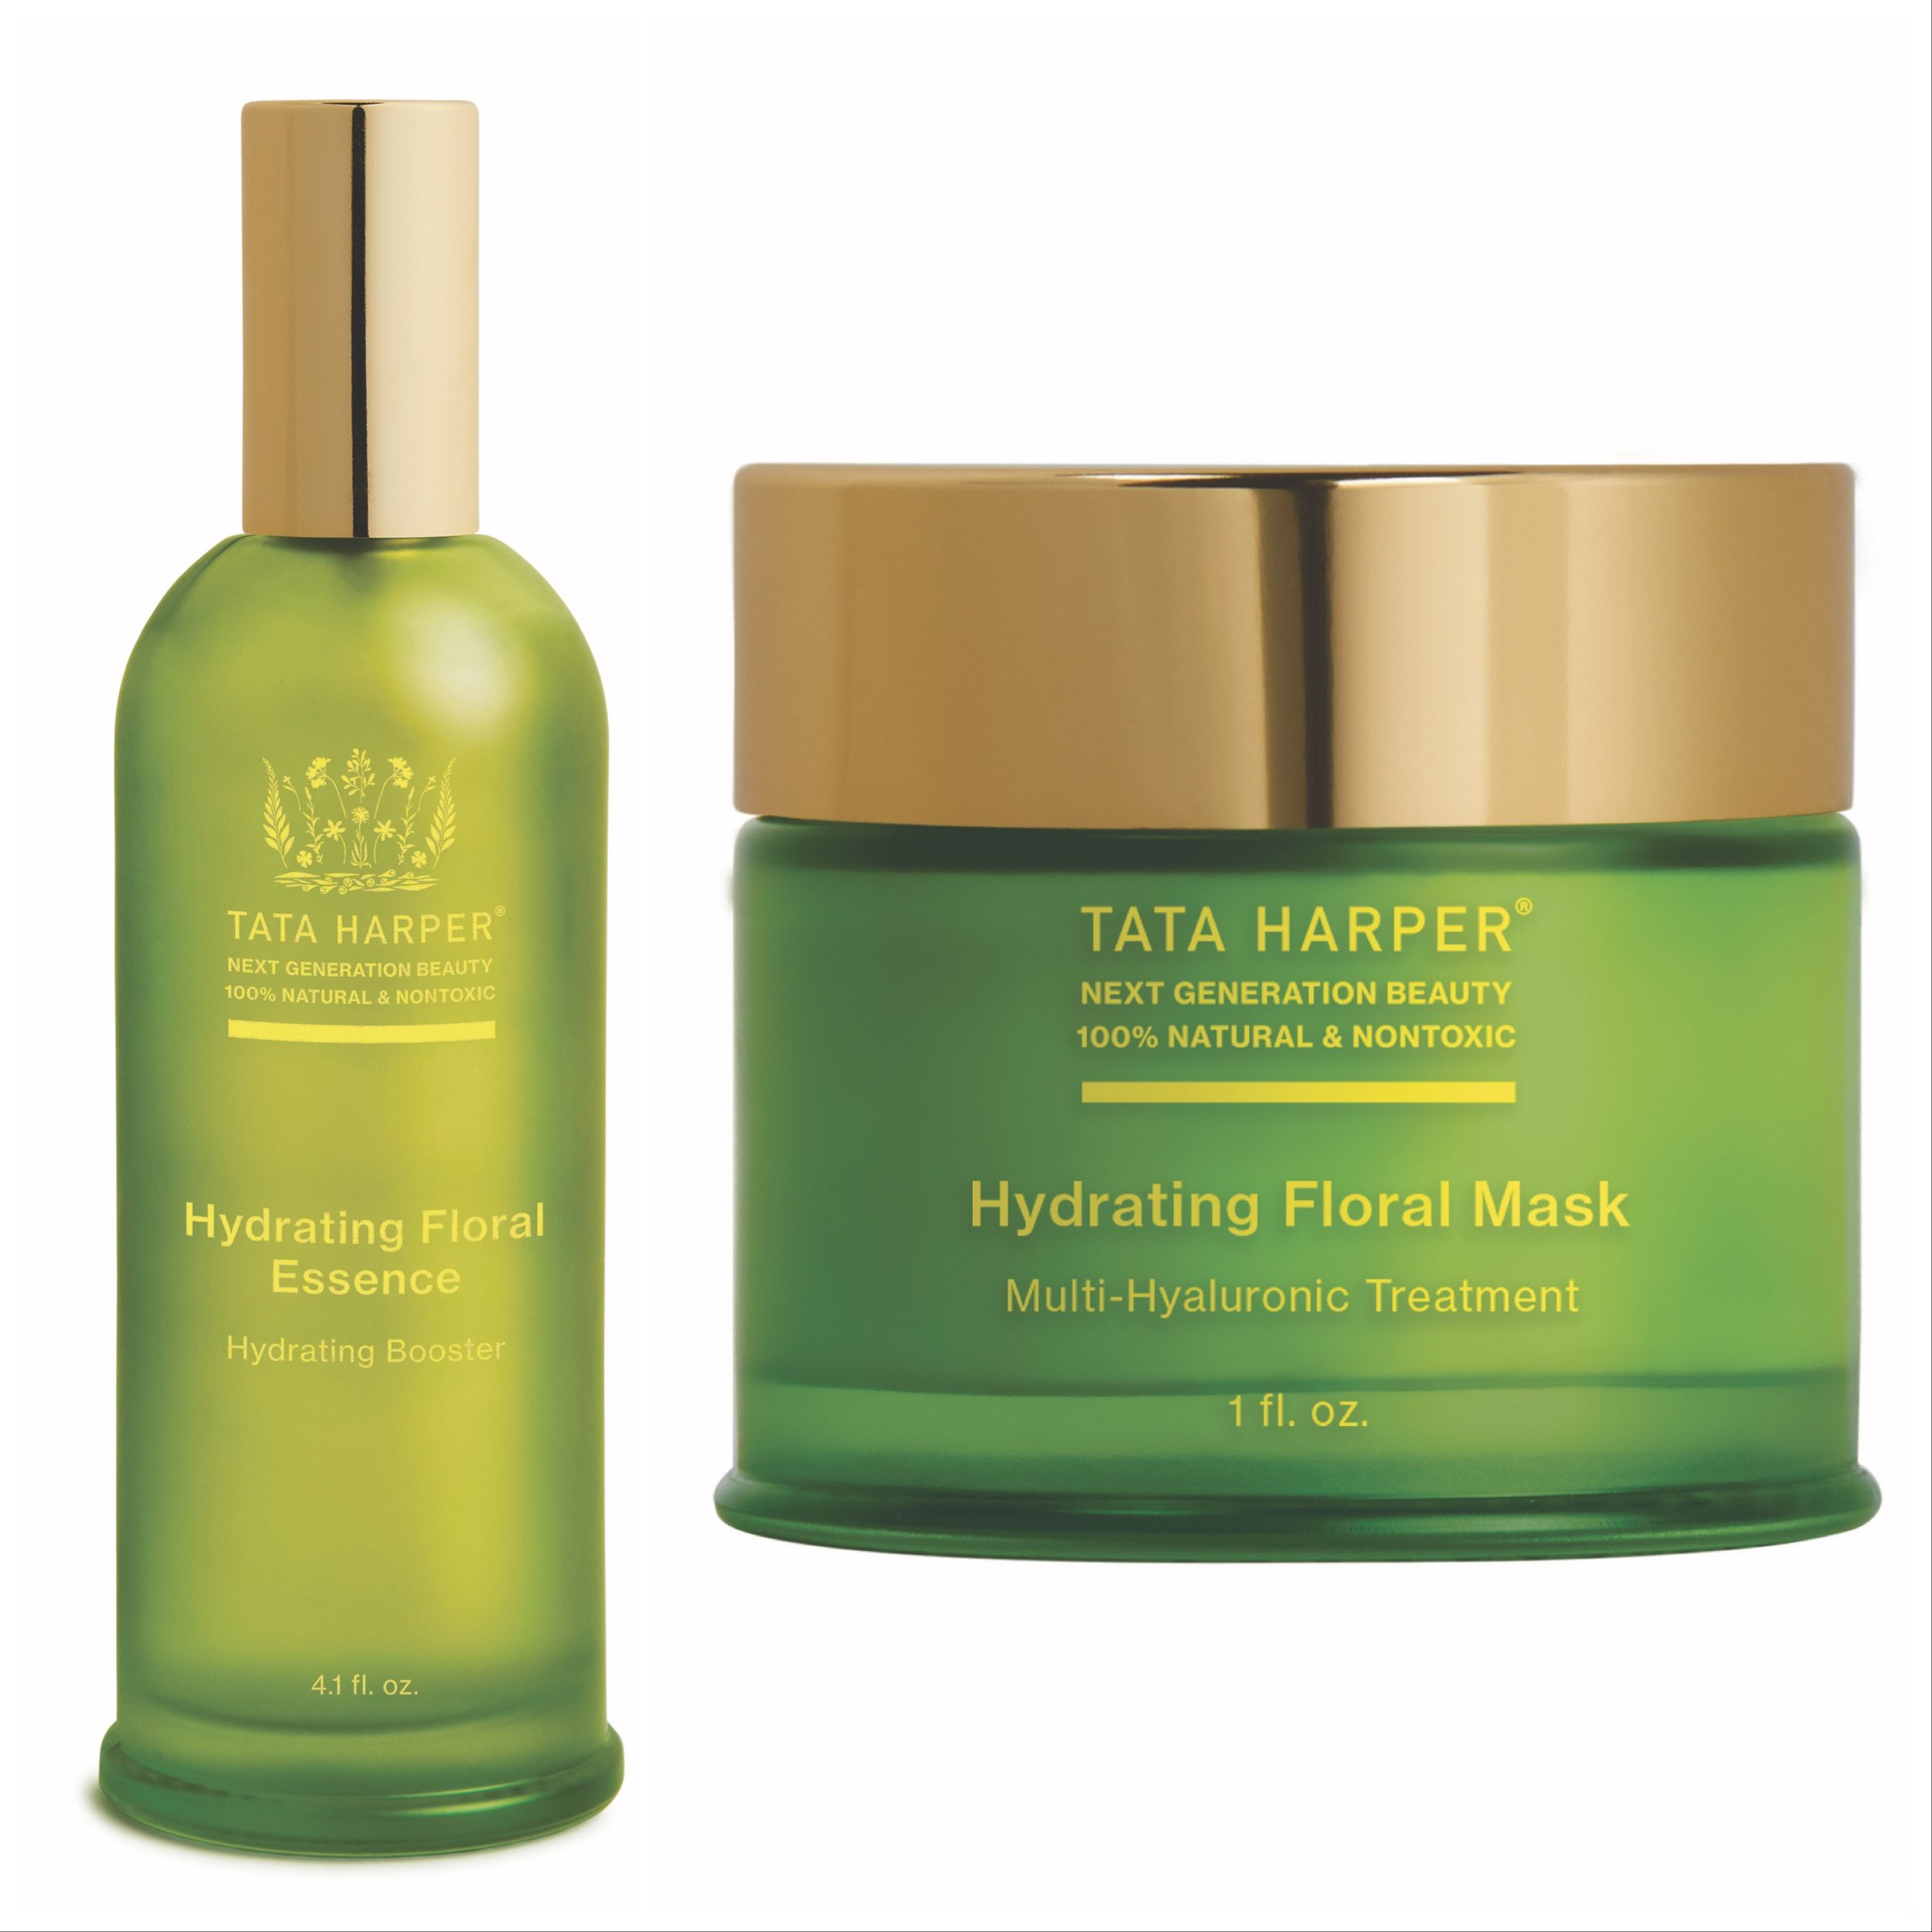 Tata Harper Hydrating Floral Essence and Mask